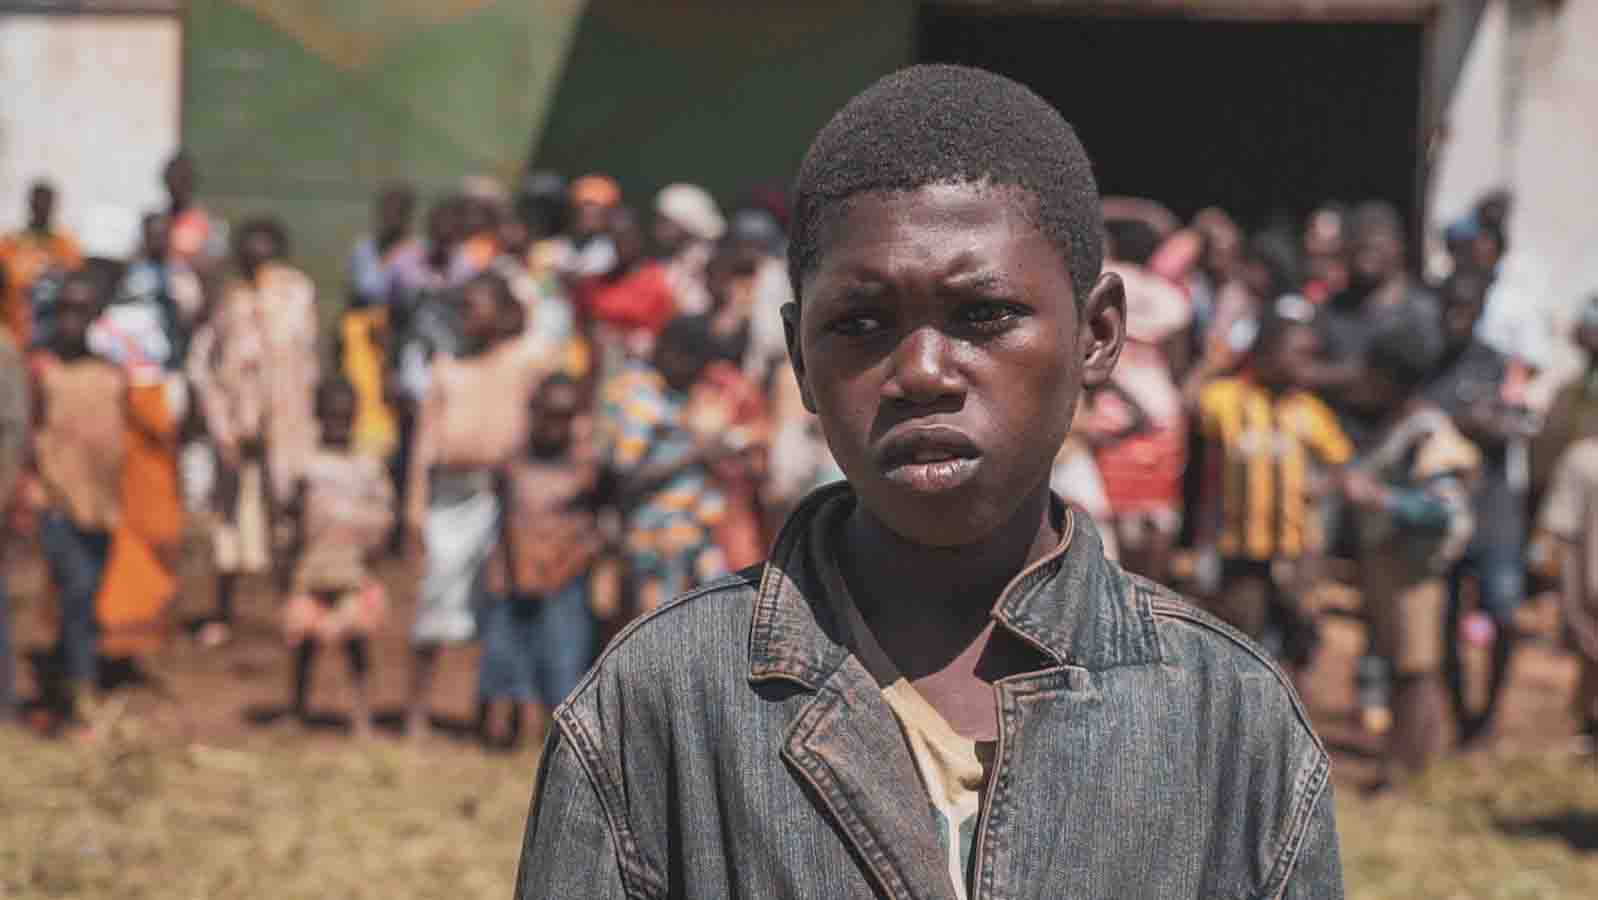 Cyclone Idai: The future is uncertain for children like Paulito